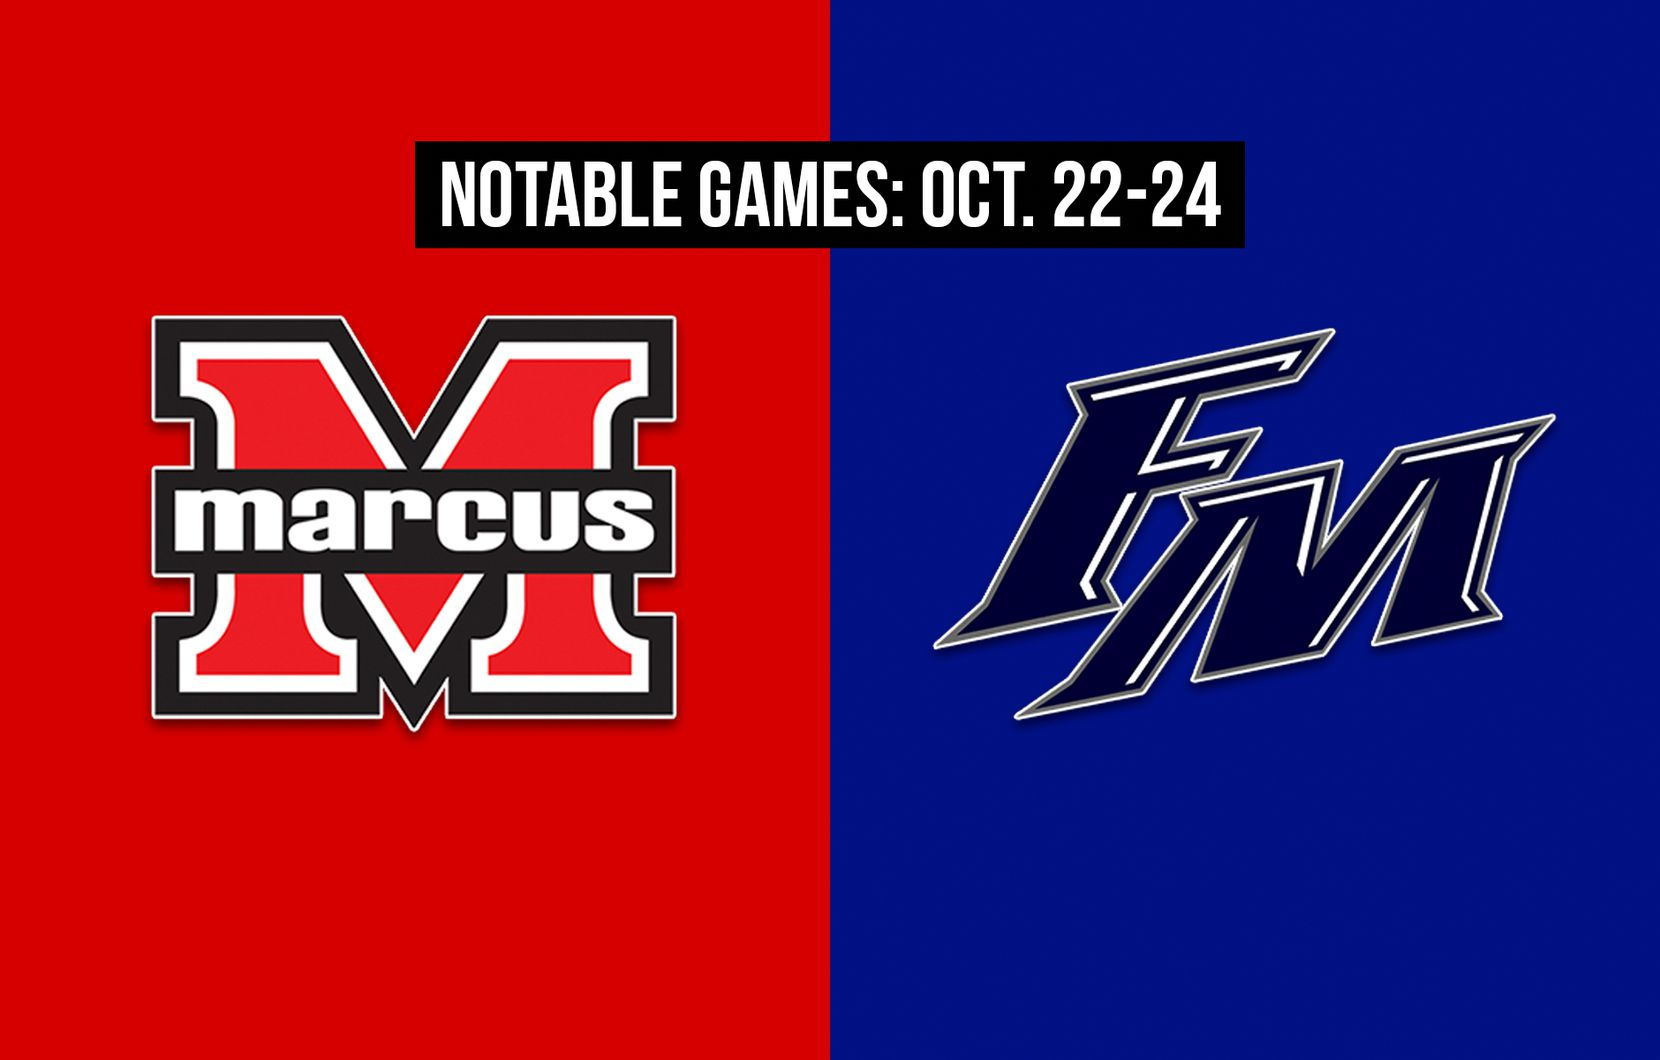 Notable games for the week of Oct. 22-24 of the 2020 season: Flower Mound Marcus vs. Flower Mound.